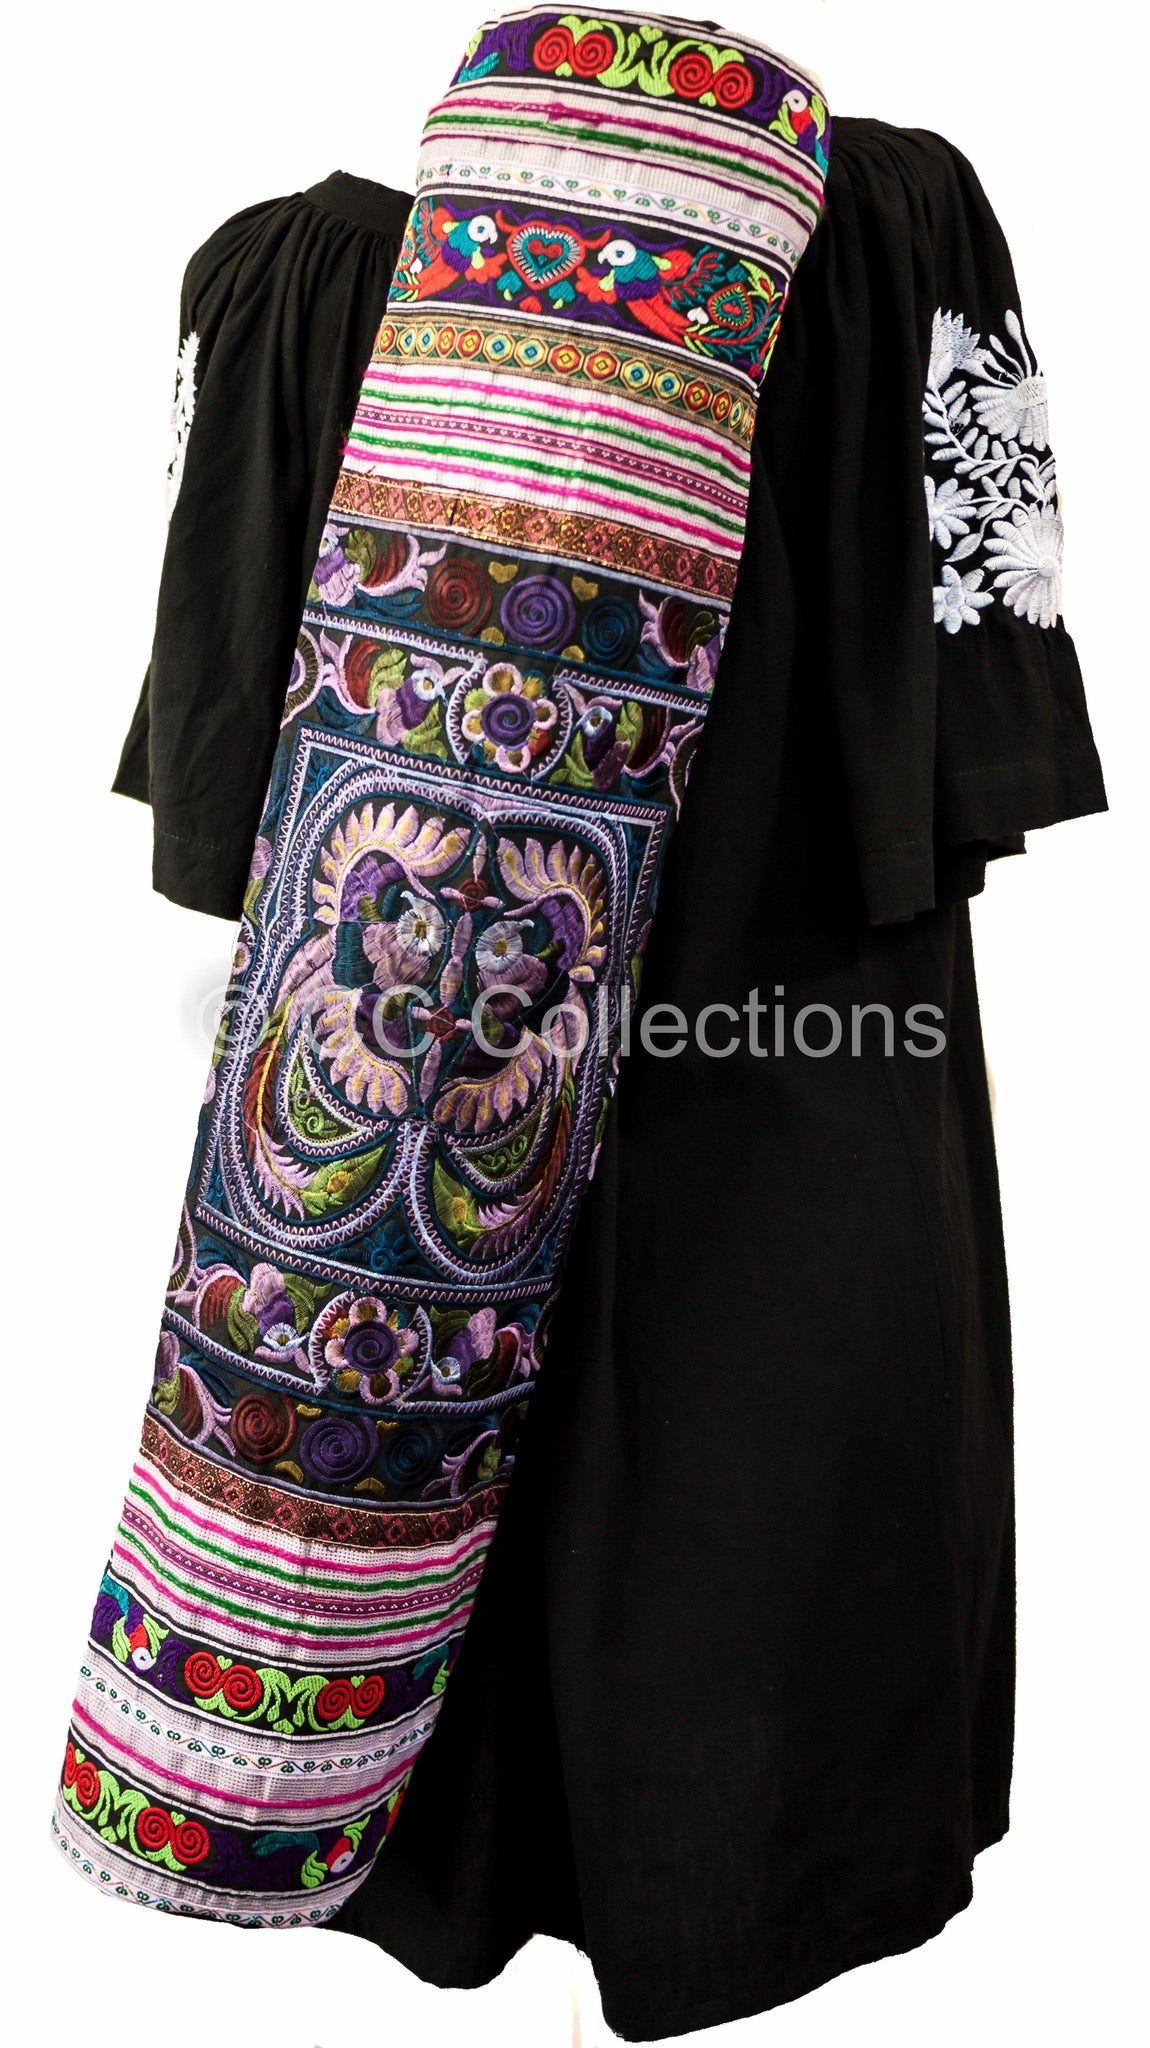 Bohemian Yoga Mat Bag Carrier Embroidered Hill tribe ethnic A - CCCollections